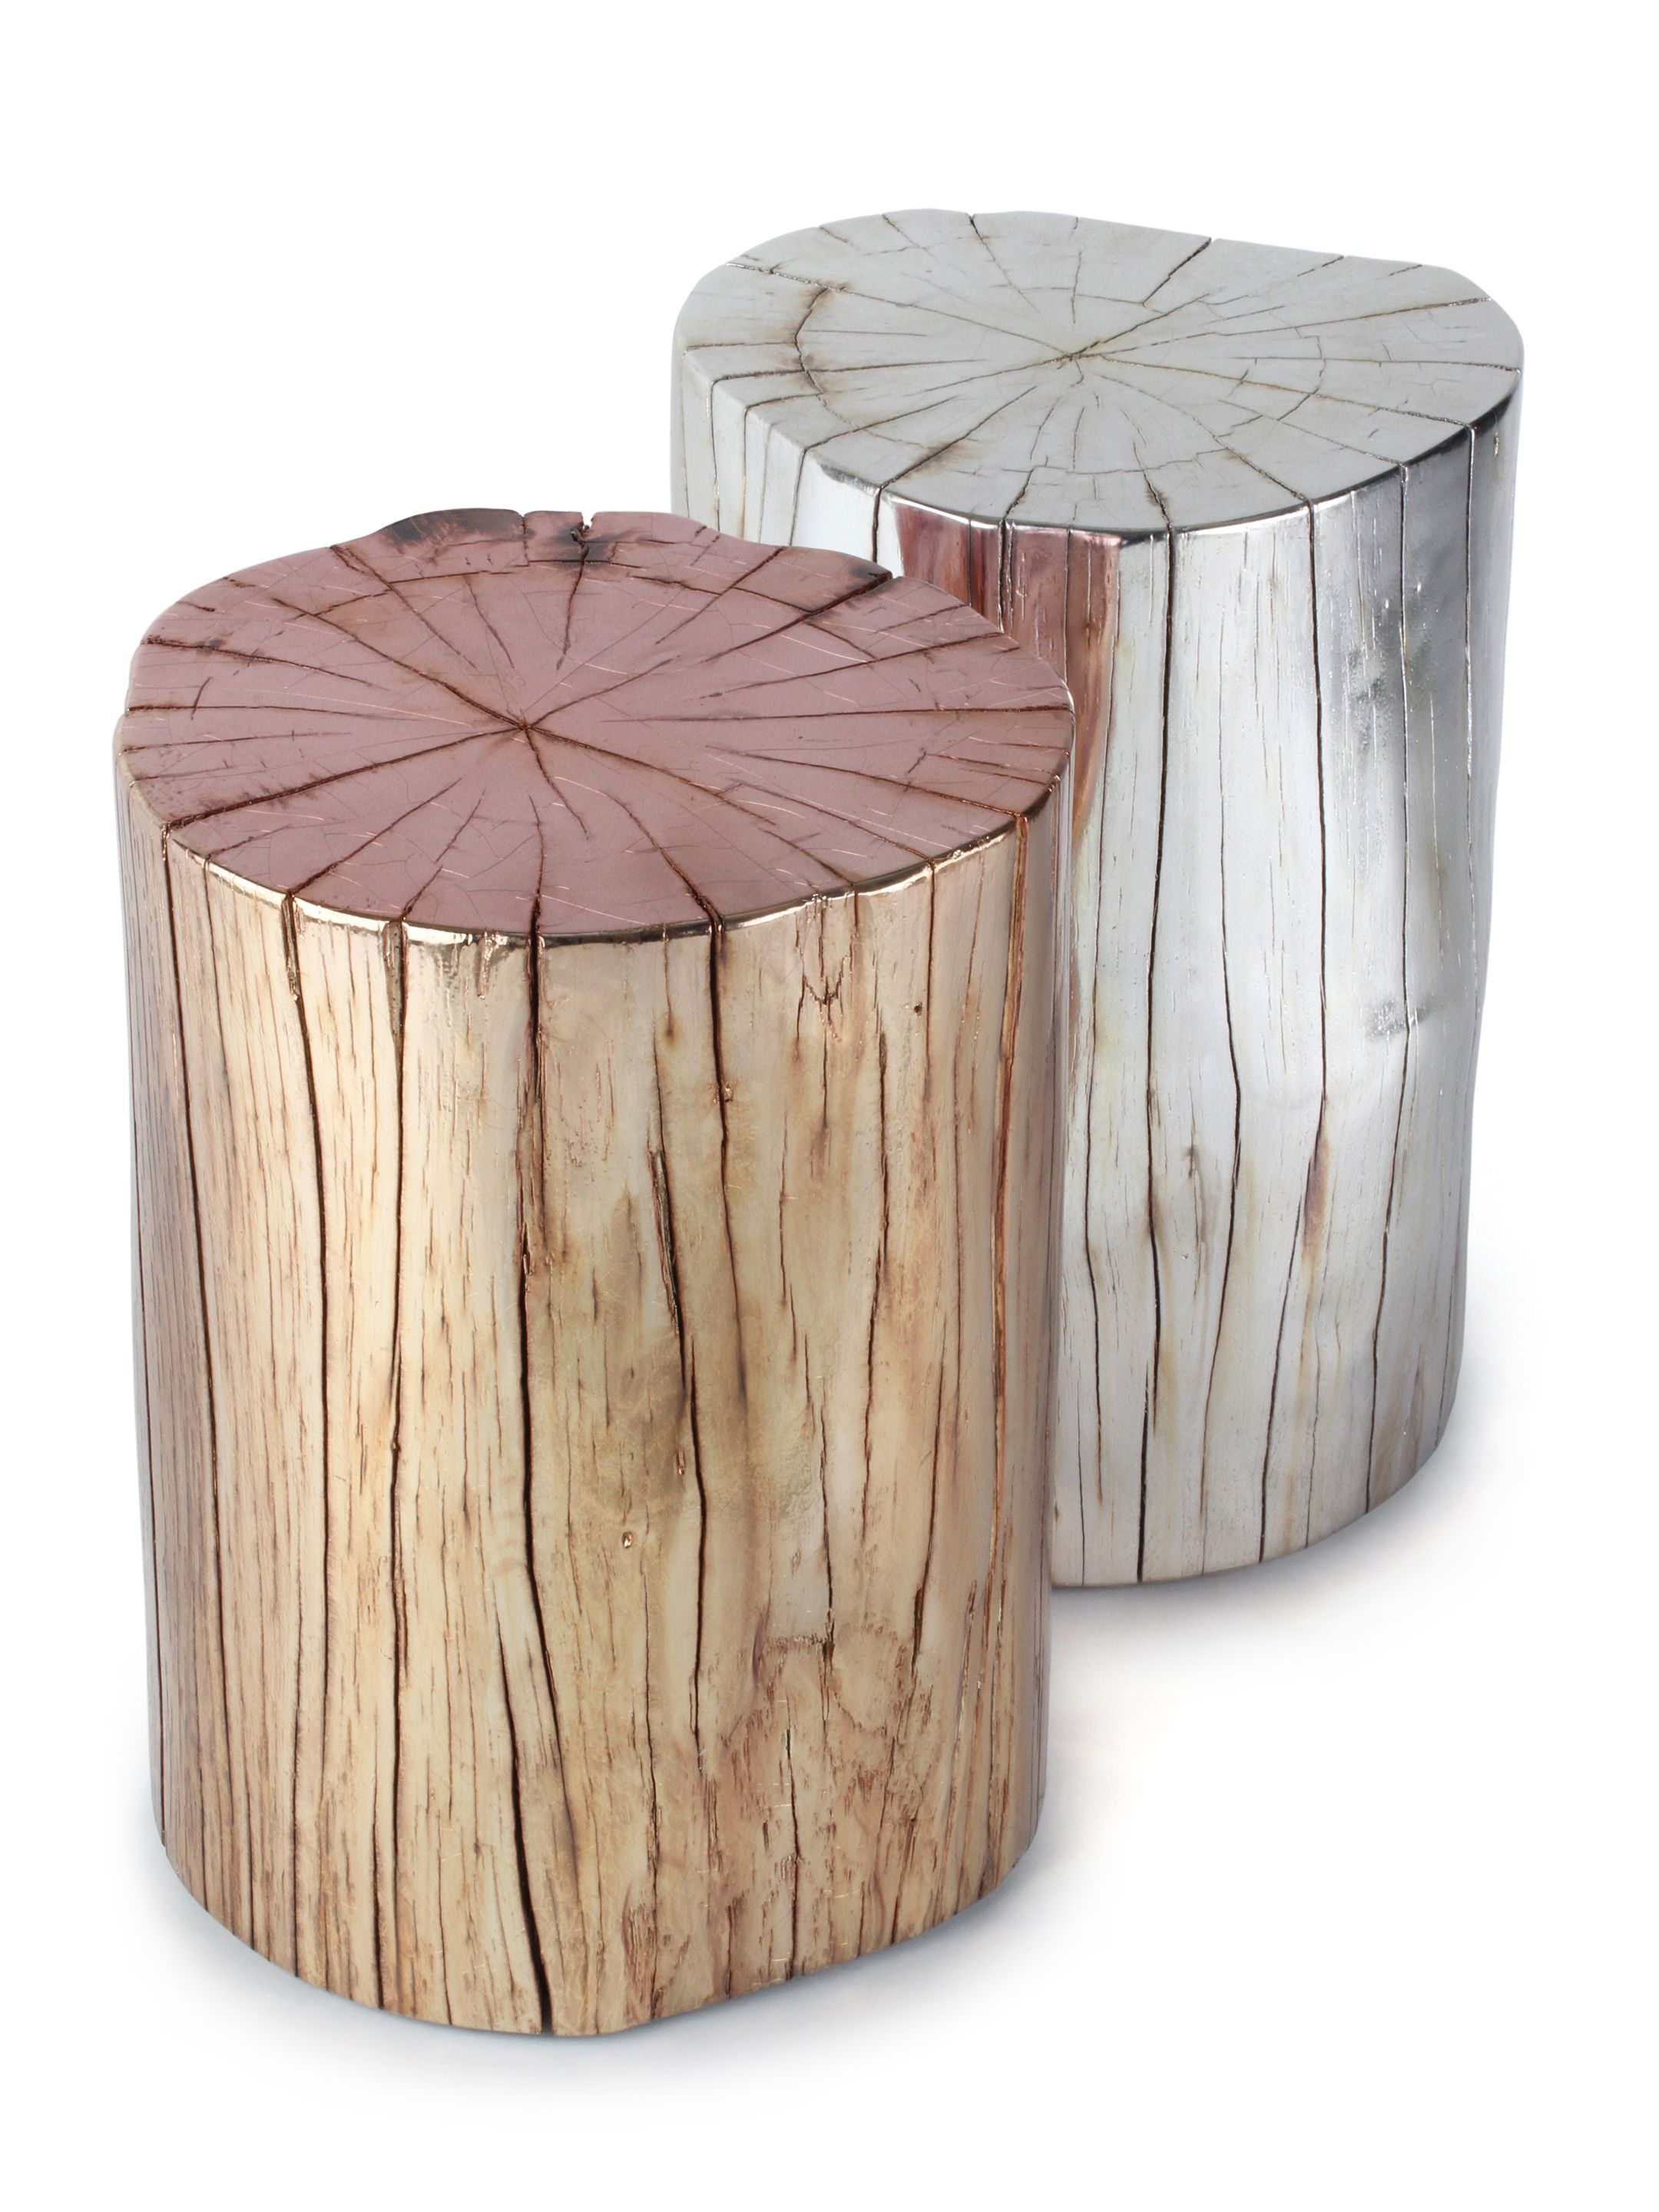 metallic tree stump side table boho home wood accent modern decor ideas cherry nightstand fire pit rectangle patio pier lamps ikea outdoor chairs yellow umbrella ceiling lamp